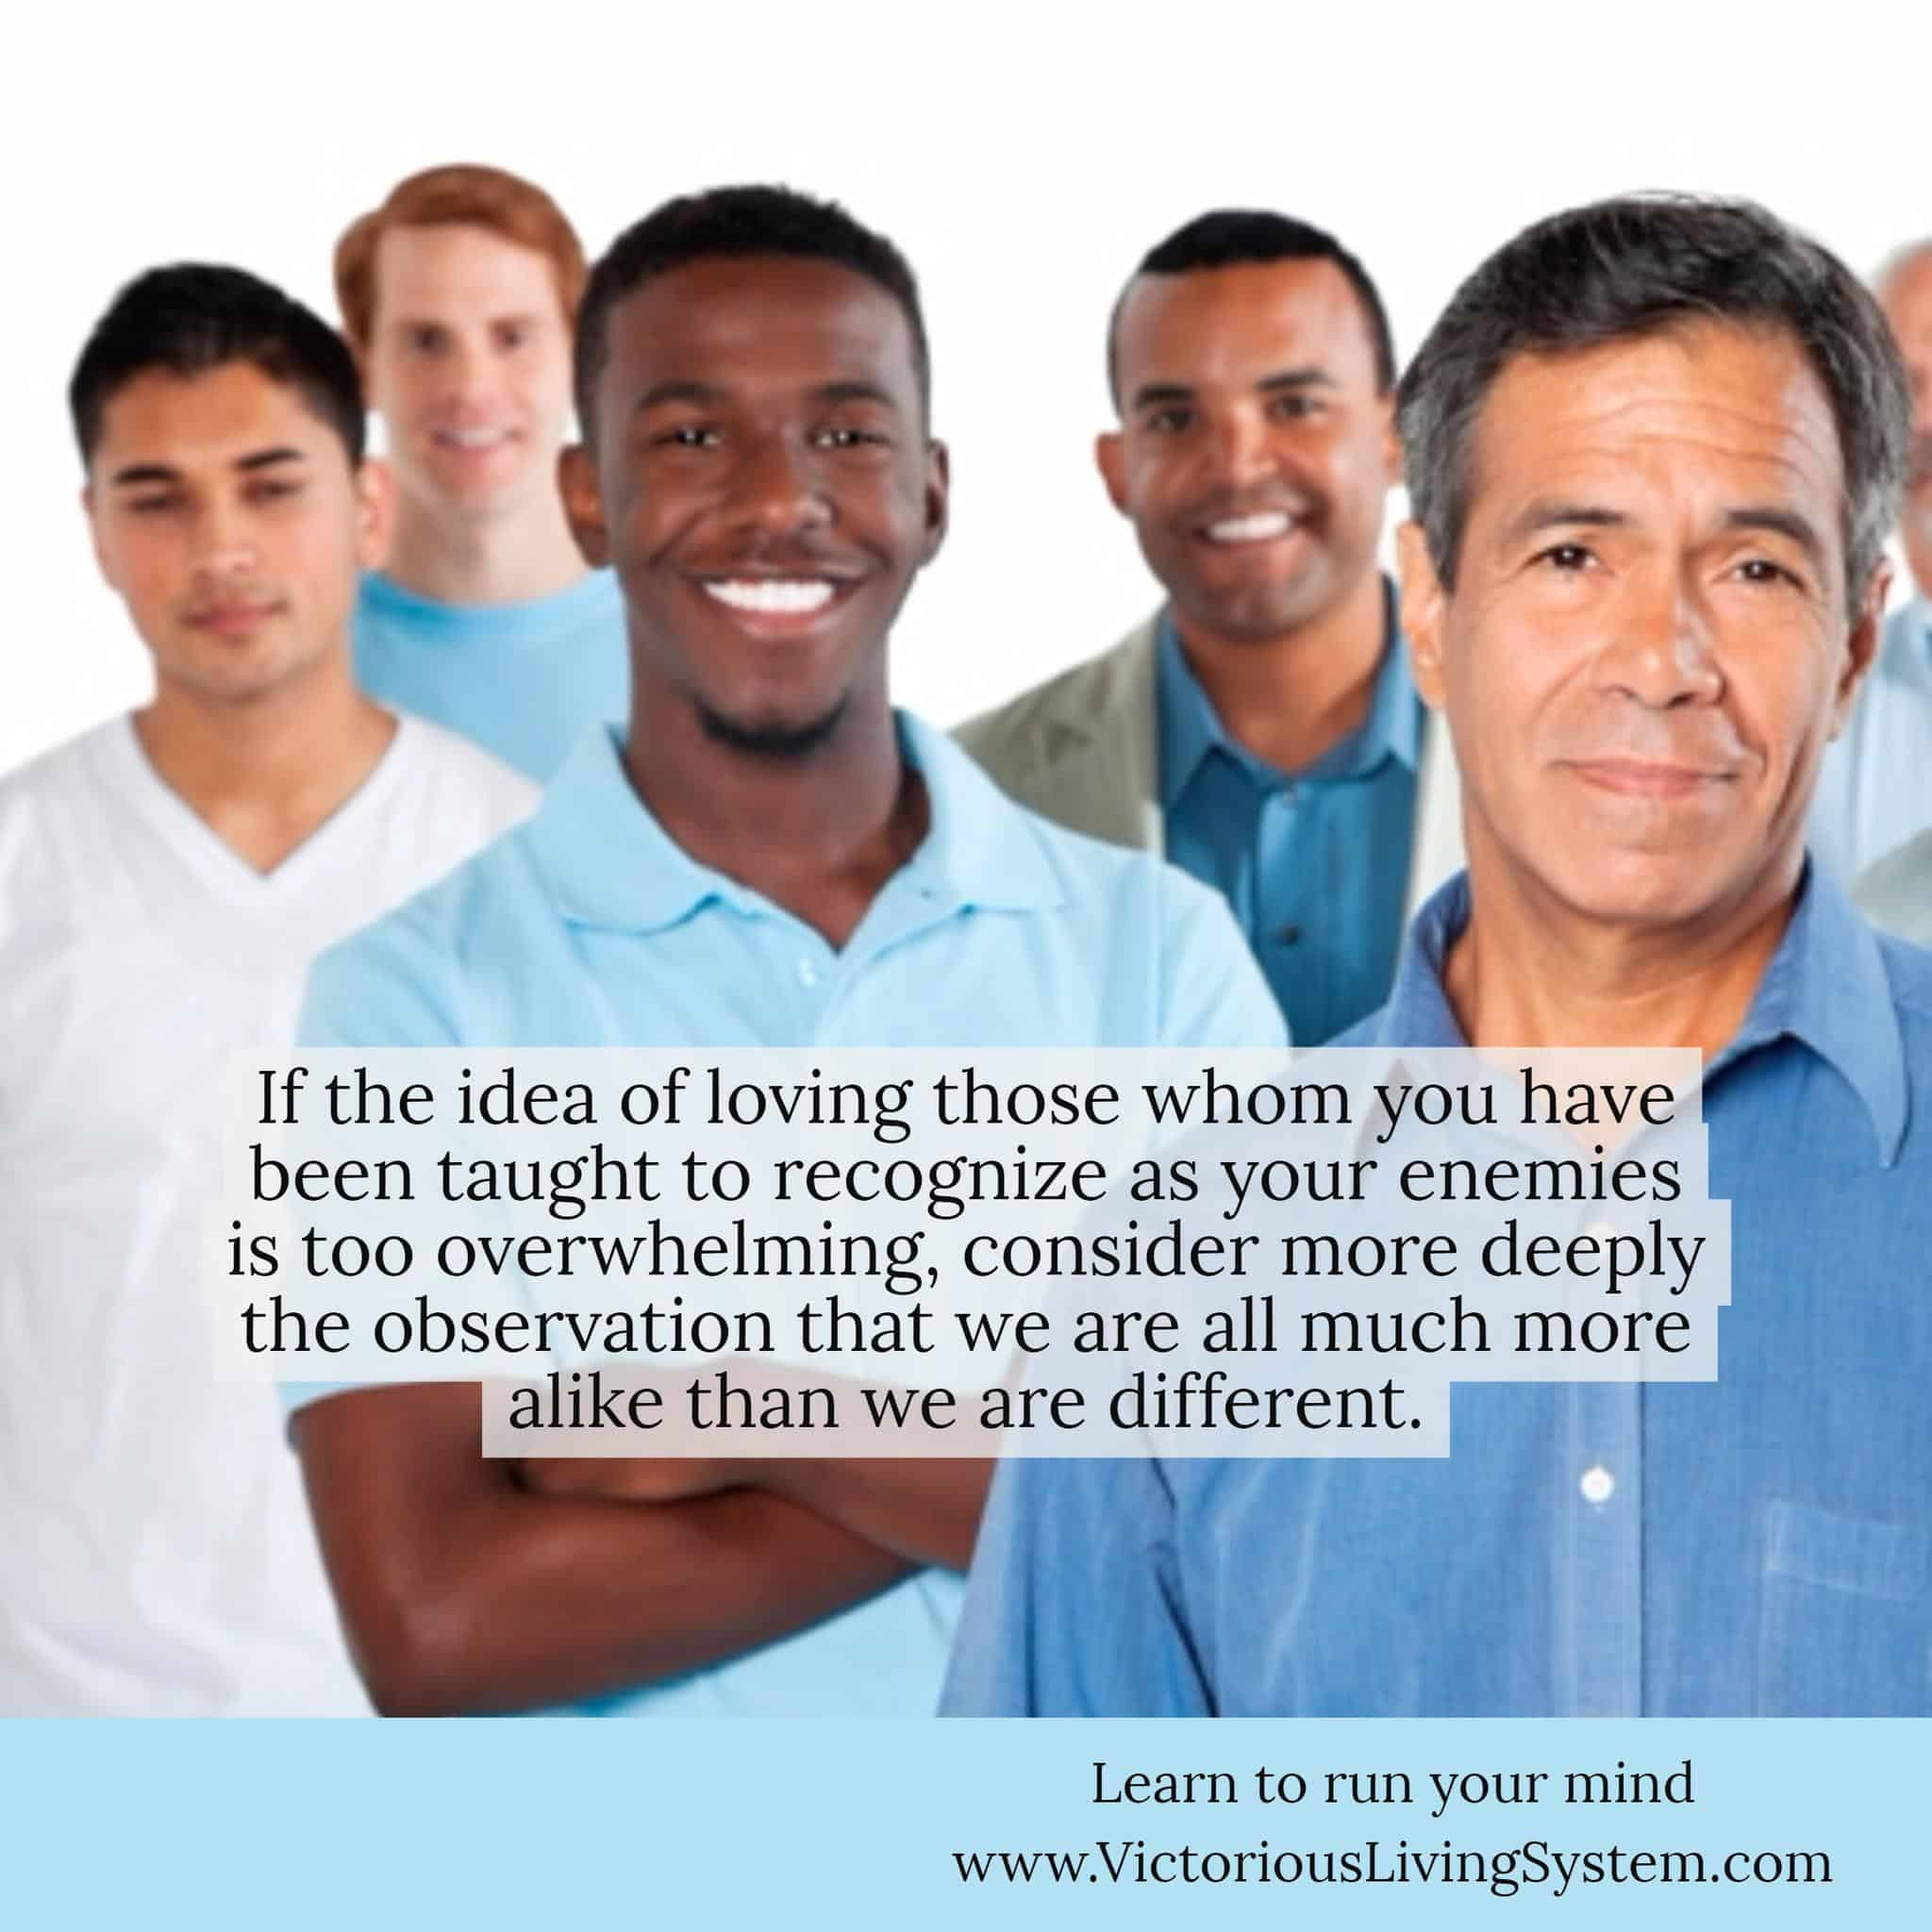 Ready to step into your personal power? http://bit.ly/wu-wc-ce get my Vcard http://bit.ly/vls-vc #WU